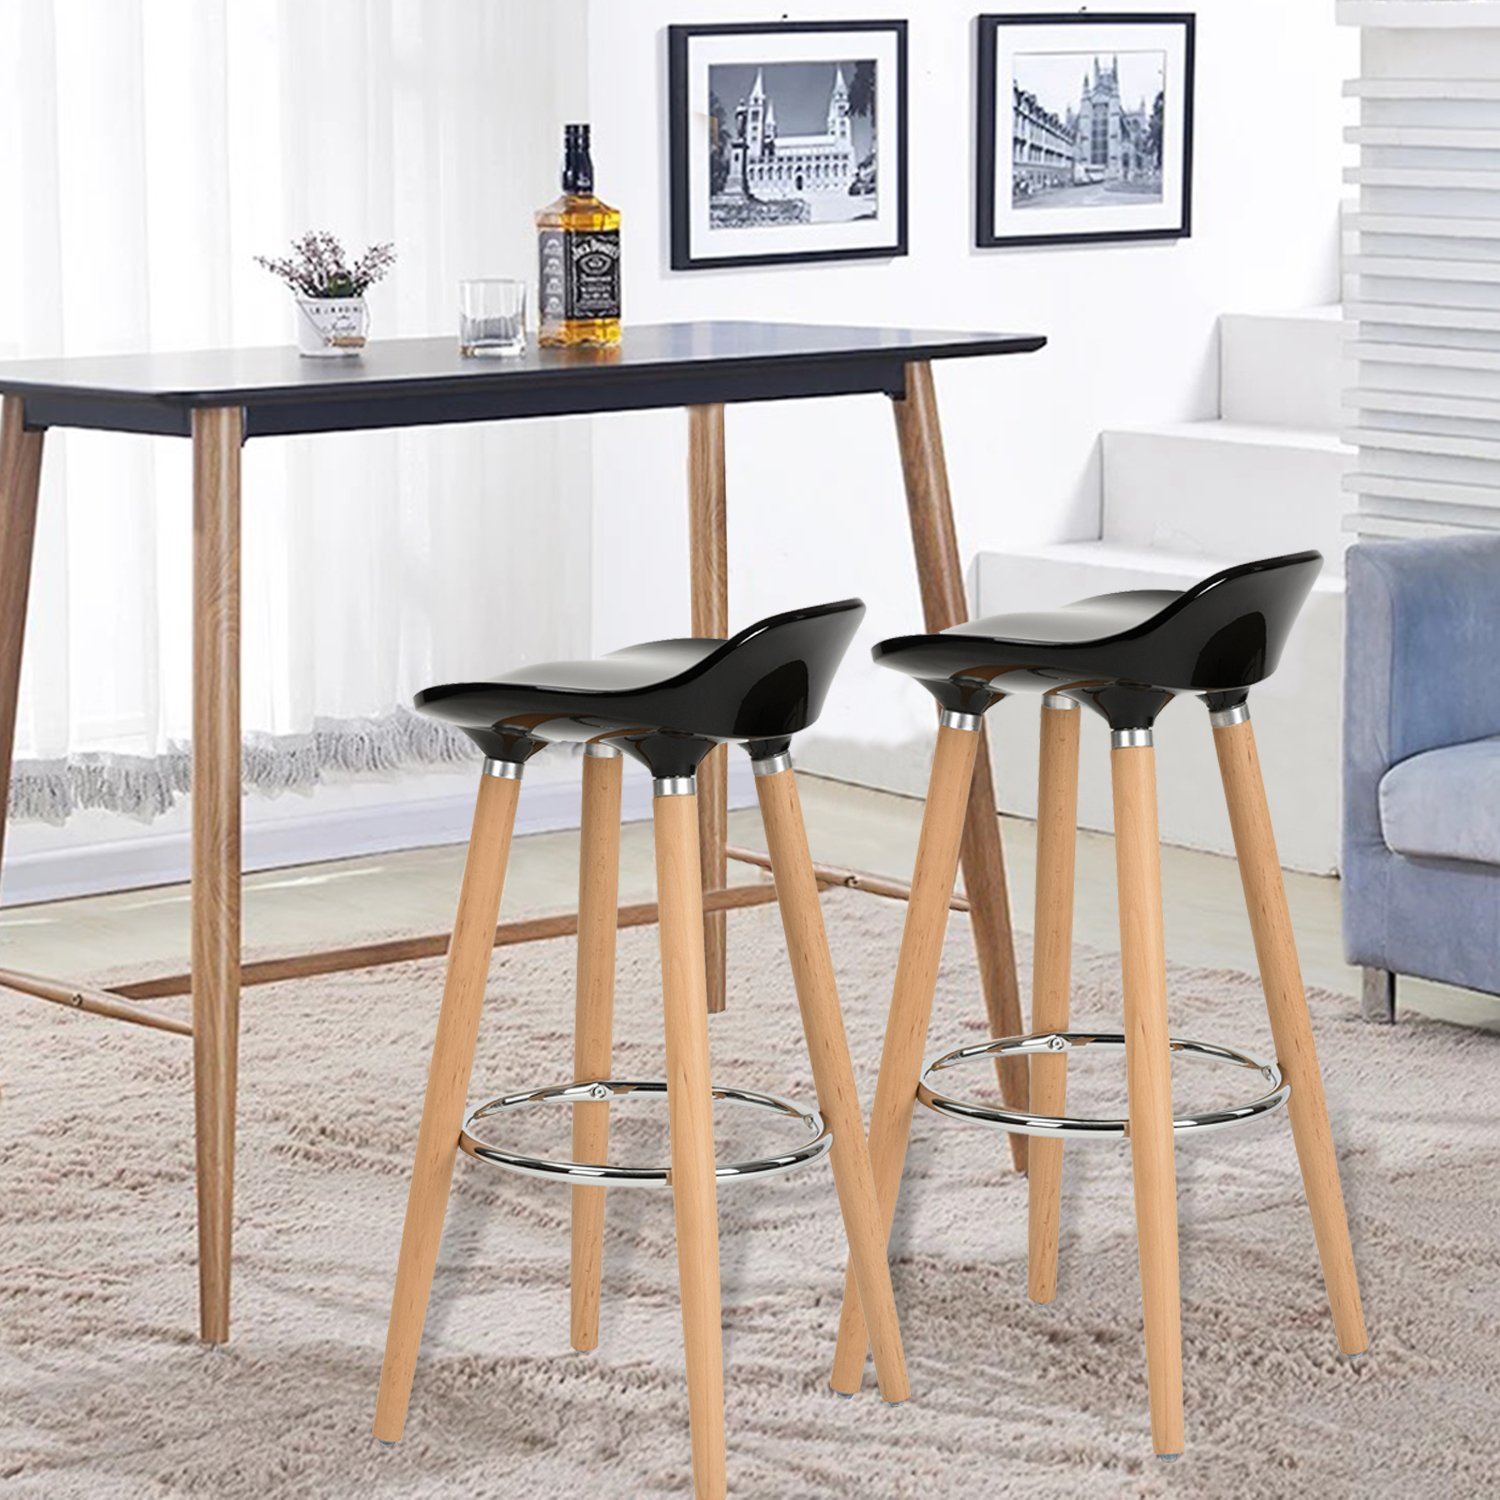 Wo Kitchen Counter Height Bar Stools 32 Inches Black Set Of 2 Tall Barstools For Home